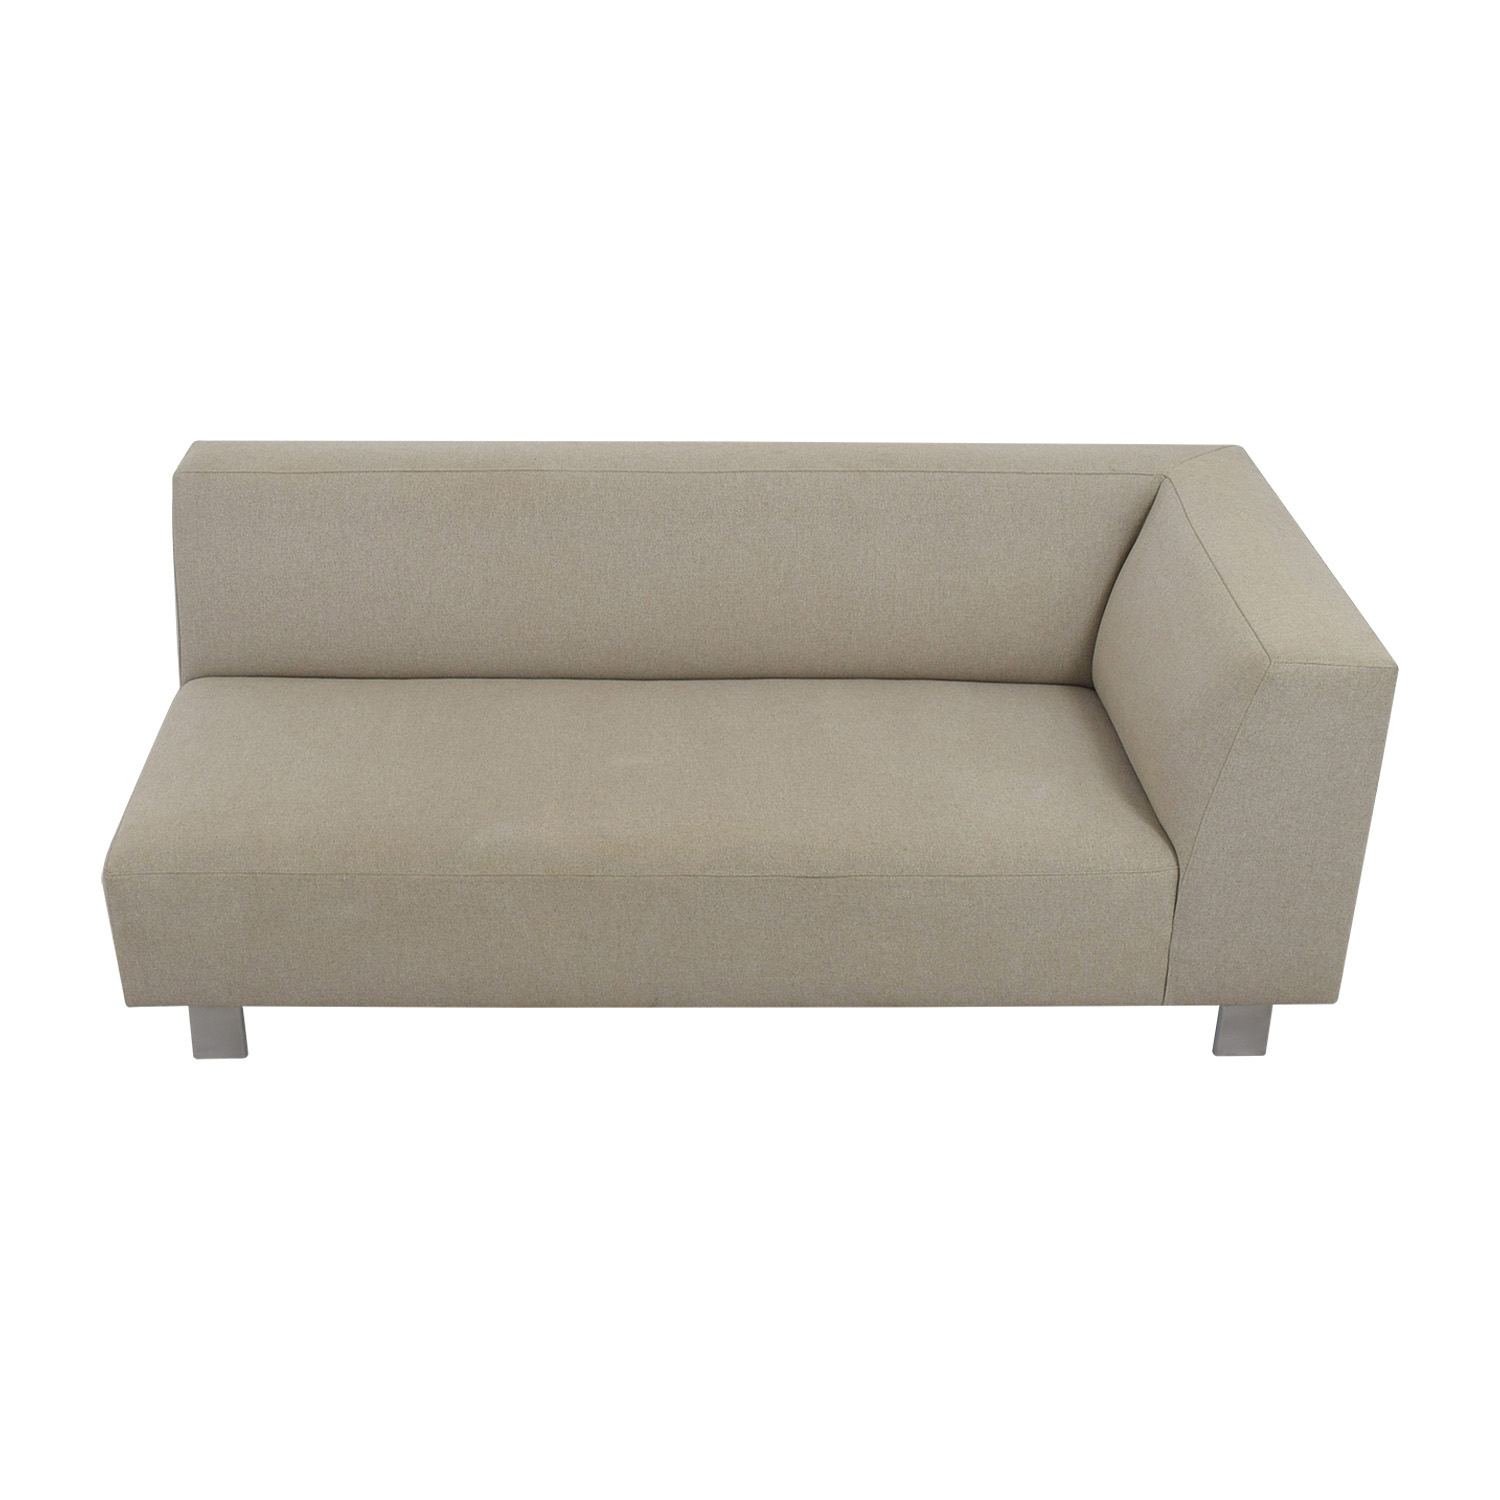 Room & Board Room & Board Chelsea Left-Arm Sofa on sale